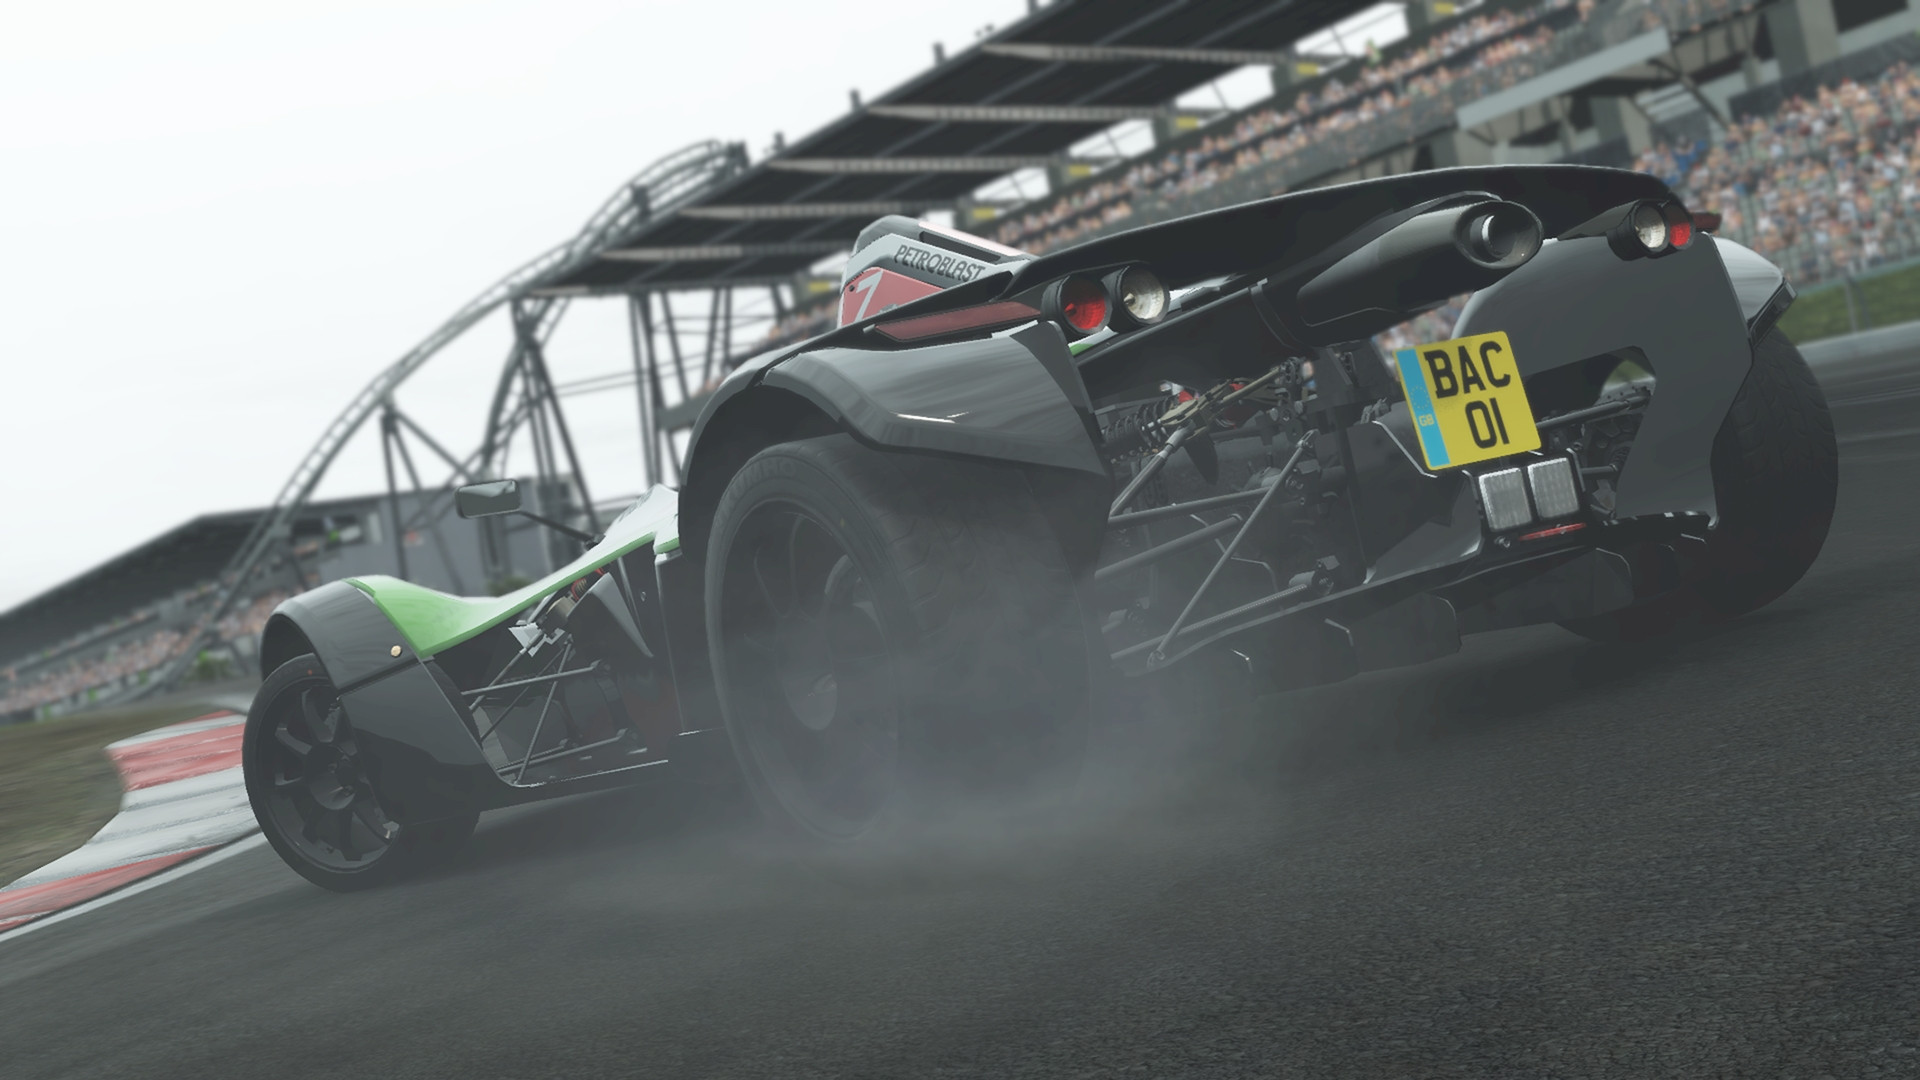 First Project CARS Screenshots From PlayStation 4 Version